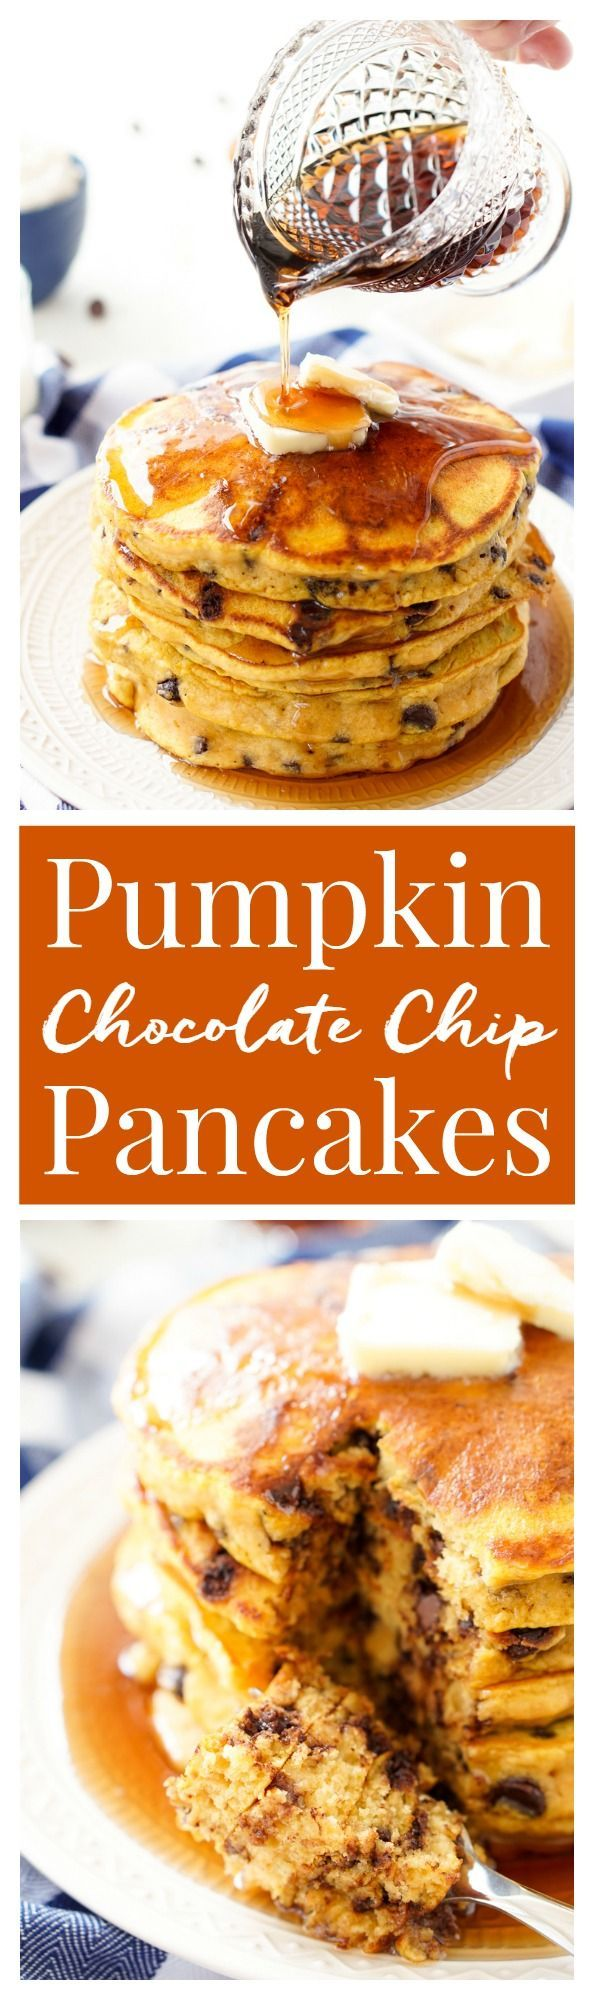 These Pumpkin Chocolate Chip Pancakes taste just like the classic fall cookie, except in this case you can drench them in maple syrup, smother them in butter, and eat them for breakfast!